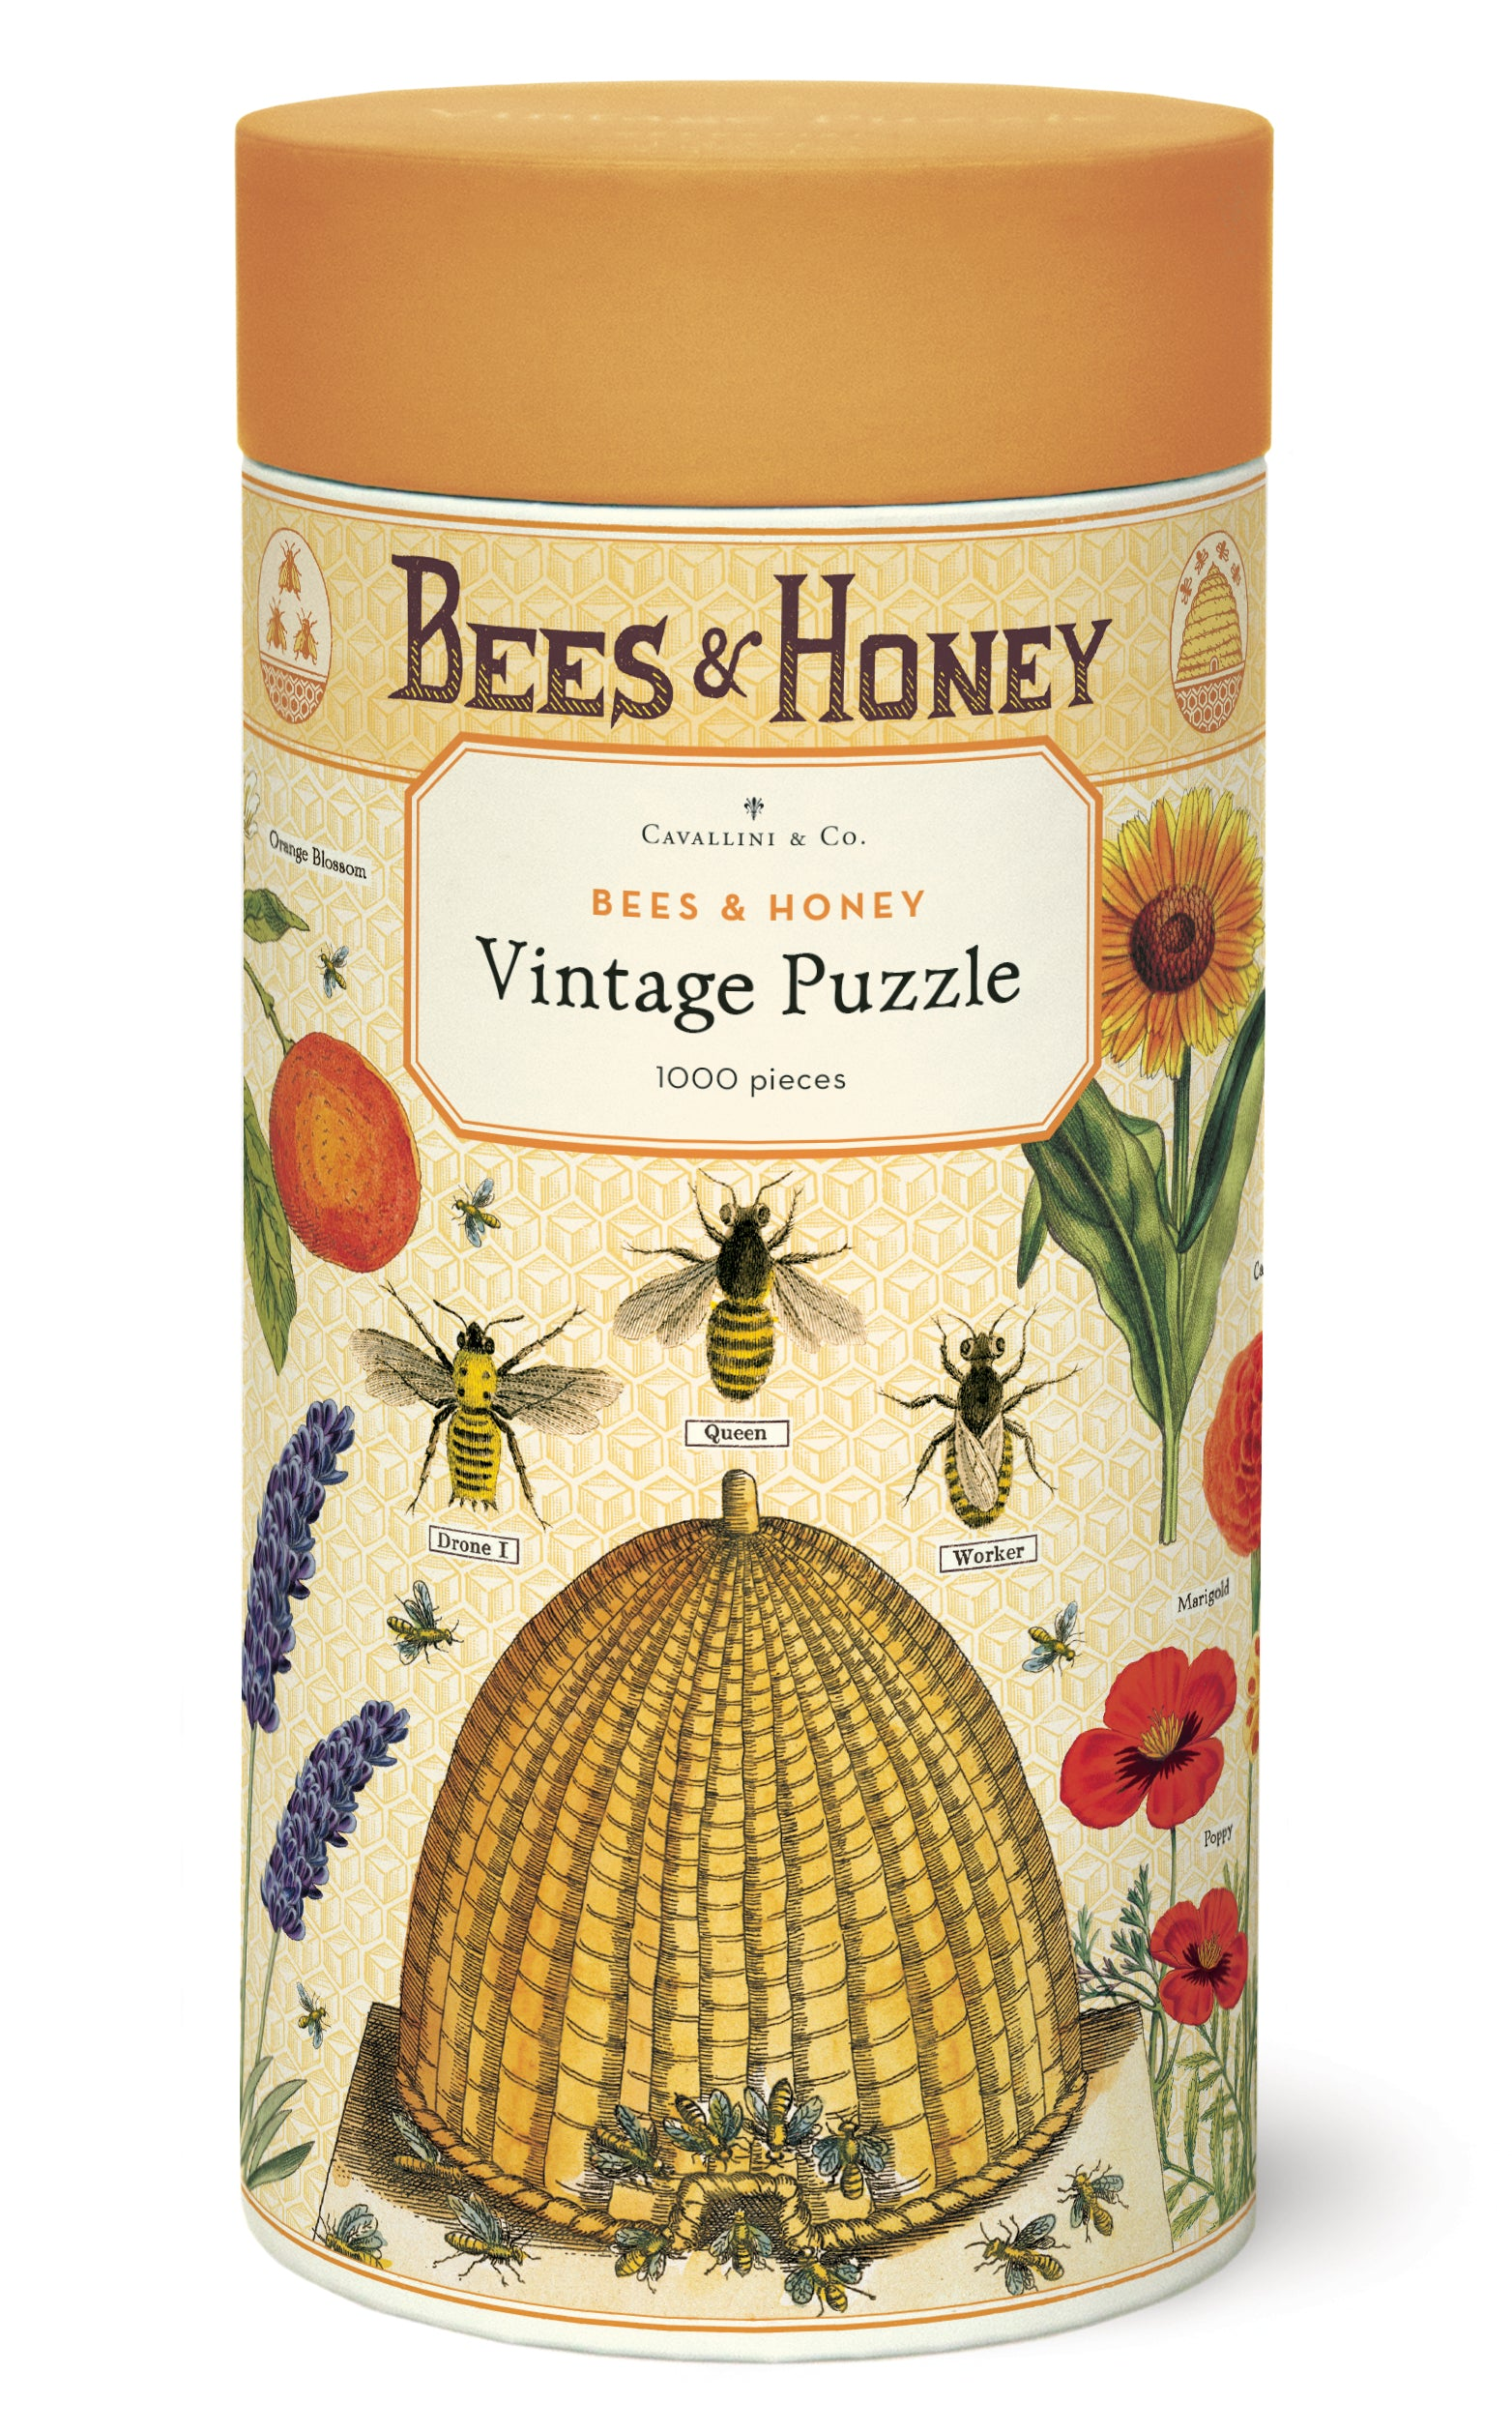 Bees & Honey 1000 pc Cavallini Puzzle